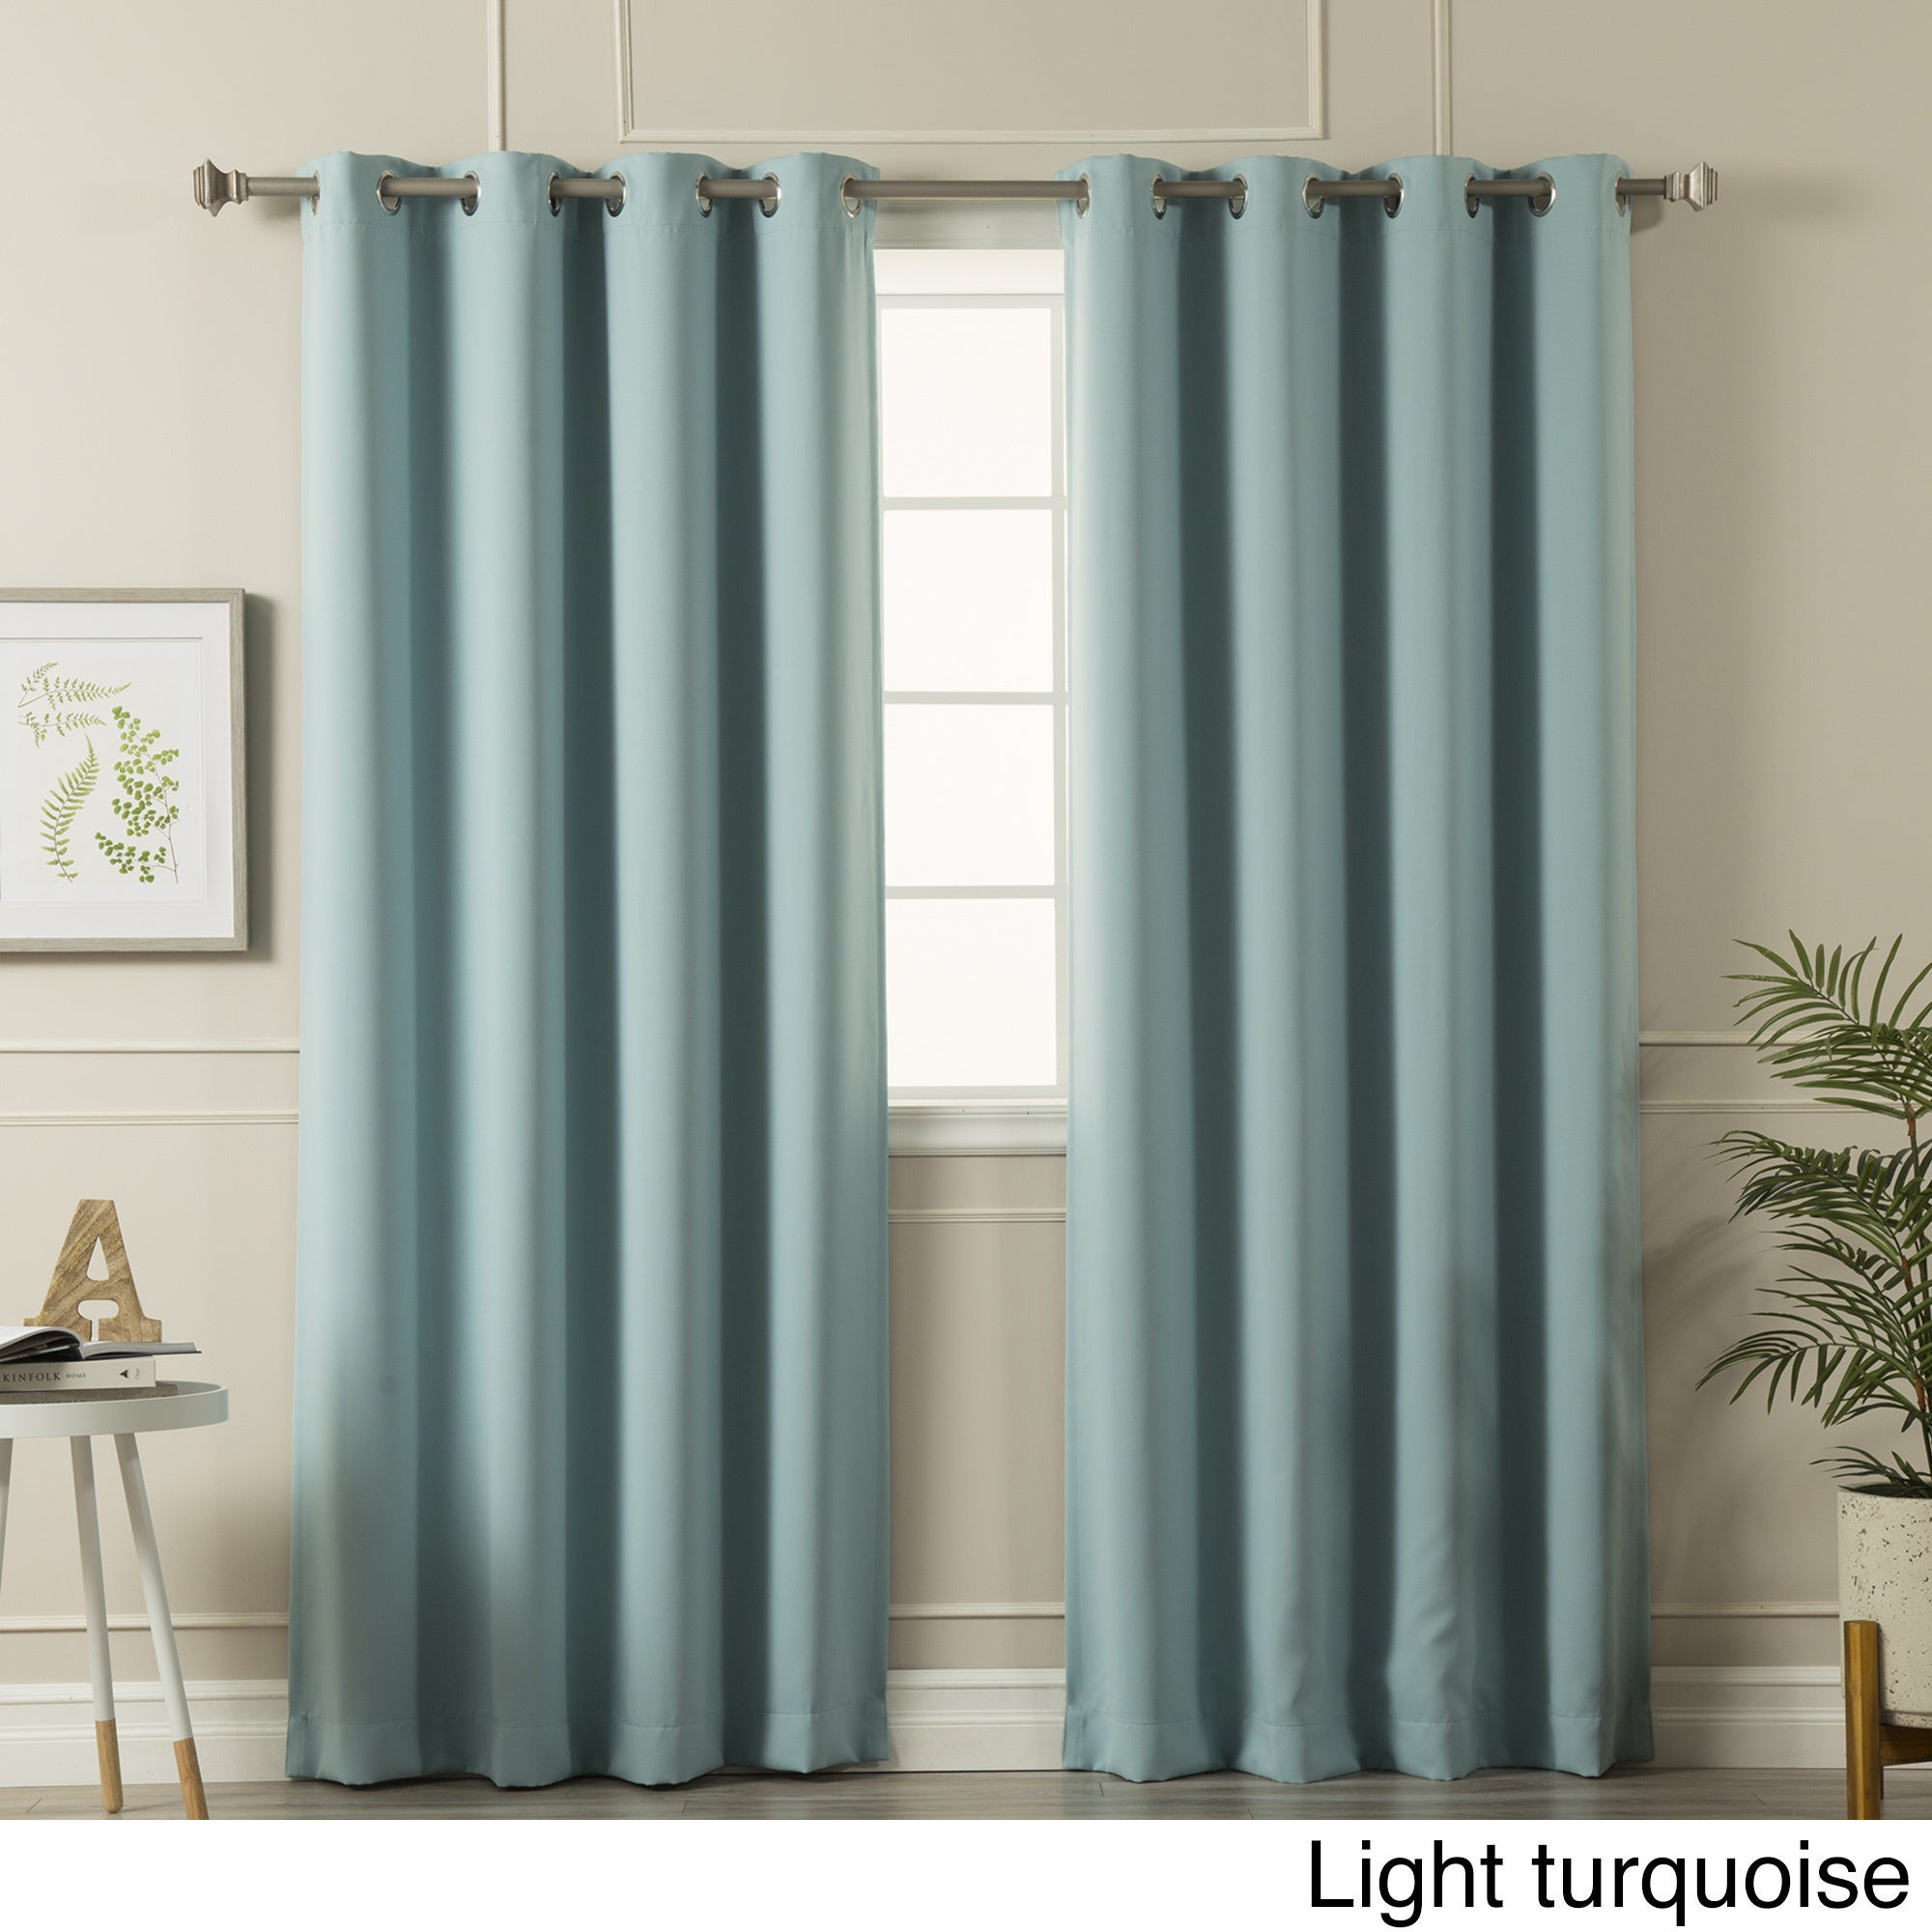 Aurora Home Silvertone Grommet Top Thermal Insulated Blackout Curtain Panel Pair In Antique Silver Grommet Top Thermal Insulated Blackout Curtain Panel Pairs (View 3 of 20)